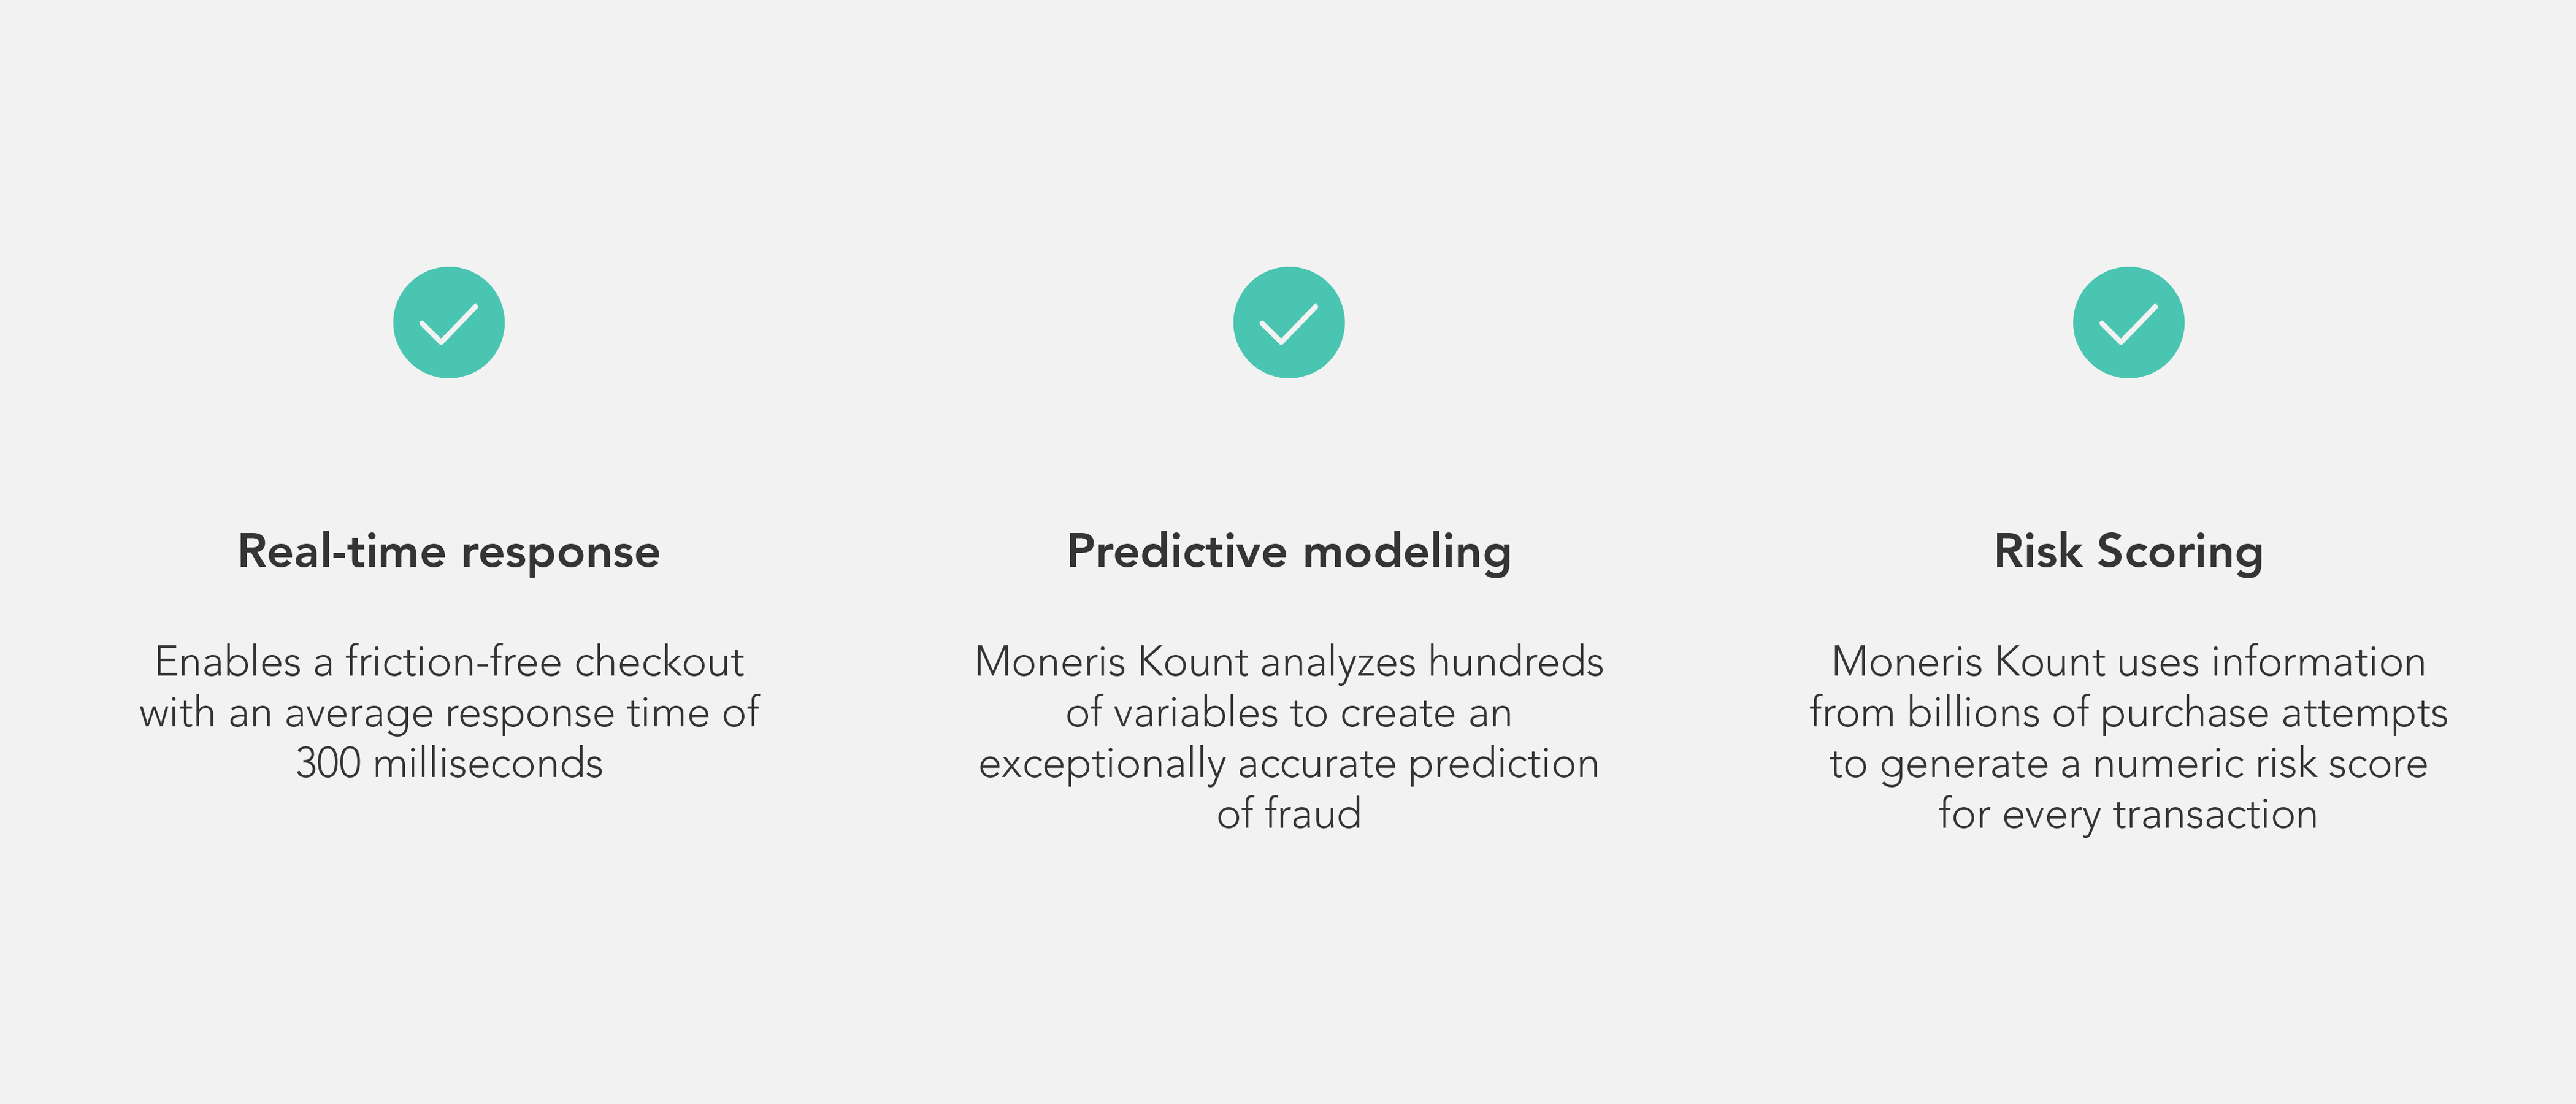 Take advantage of Kount Essential for your ecommerce with features like real-time response, predictive modeling, and risk scoring.